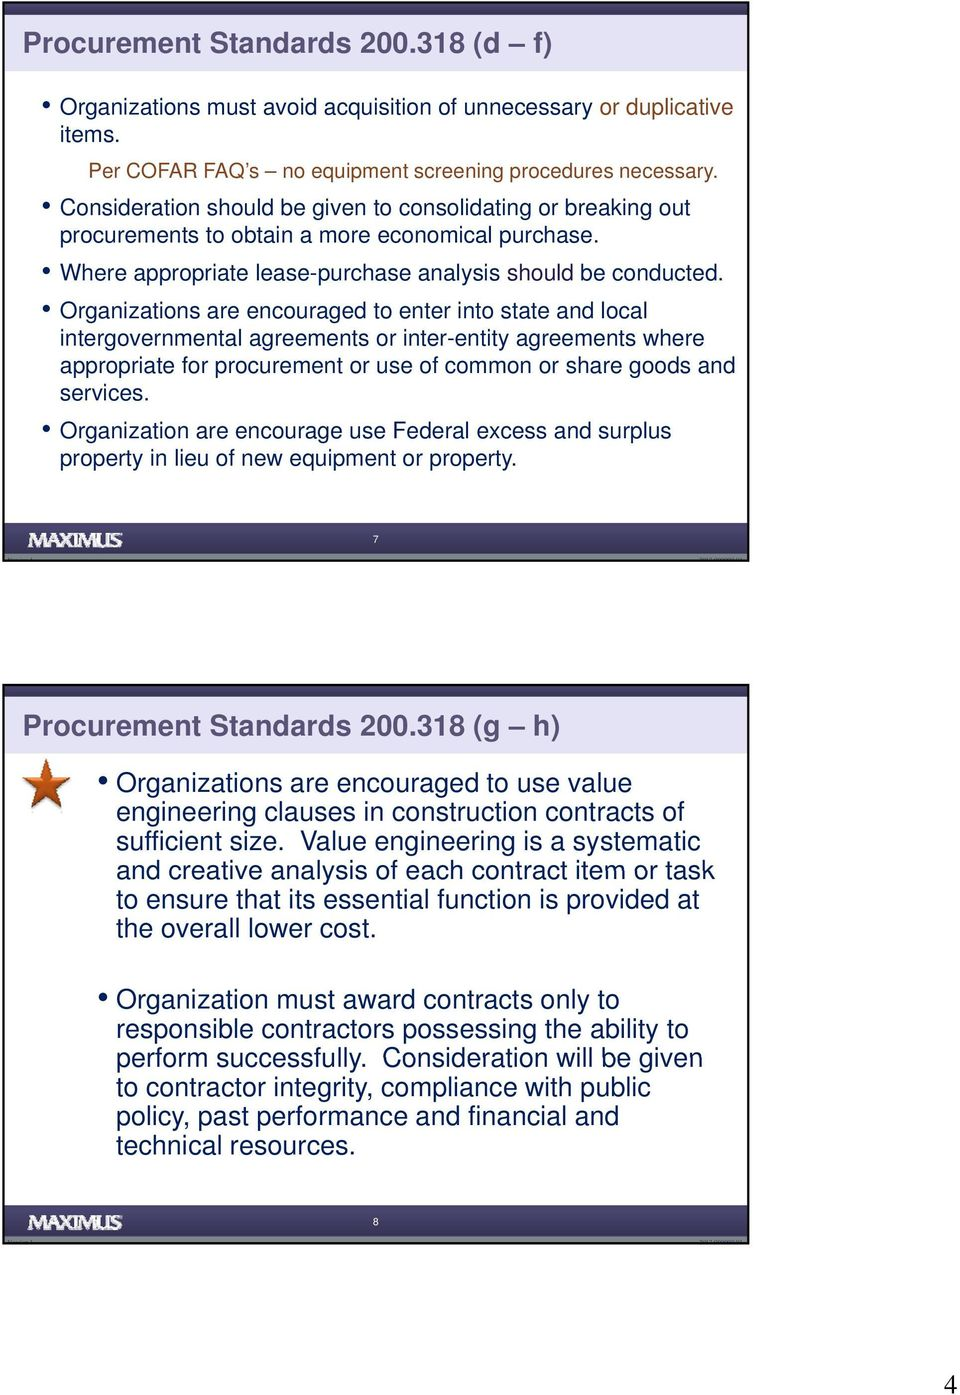 Organizations are encouraged to enter into state and local intergovernmental agreements or inter-entity agreements where appropriate p for procurement or use of common or share goods and services.